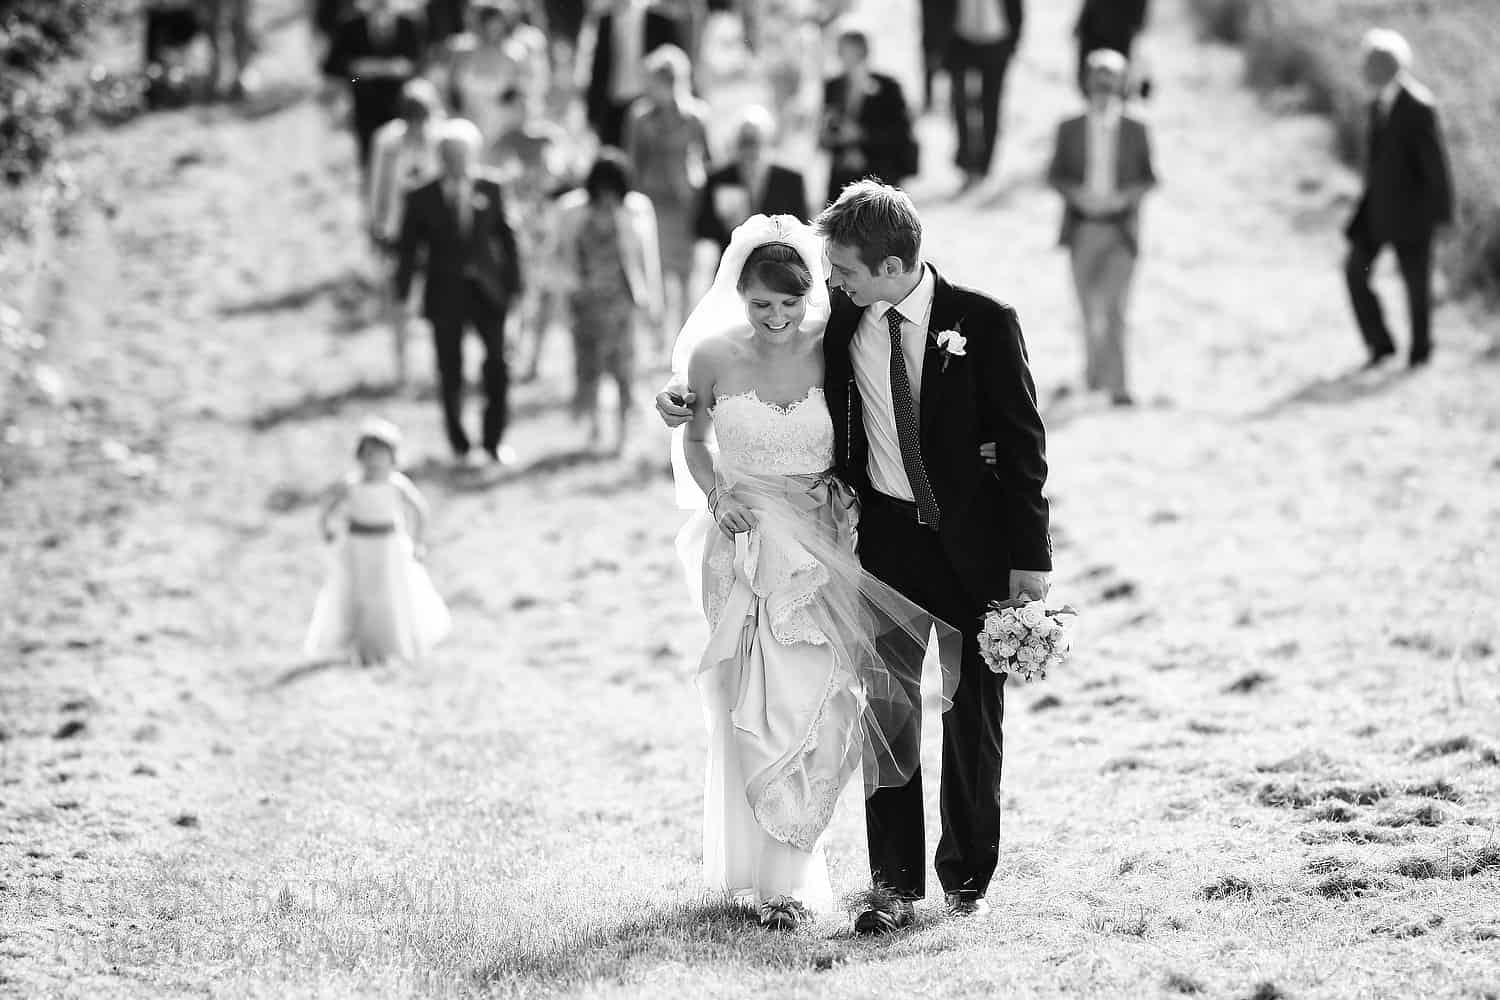 Bride and groom lead the wedding guests across sunny fields to the wedding reception